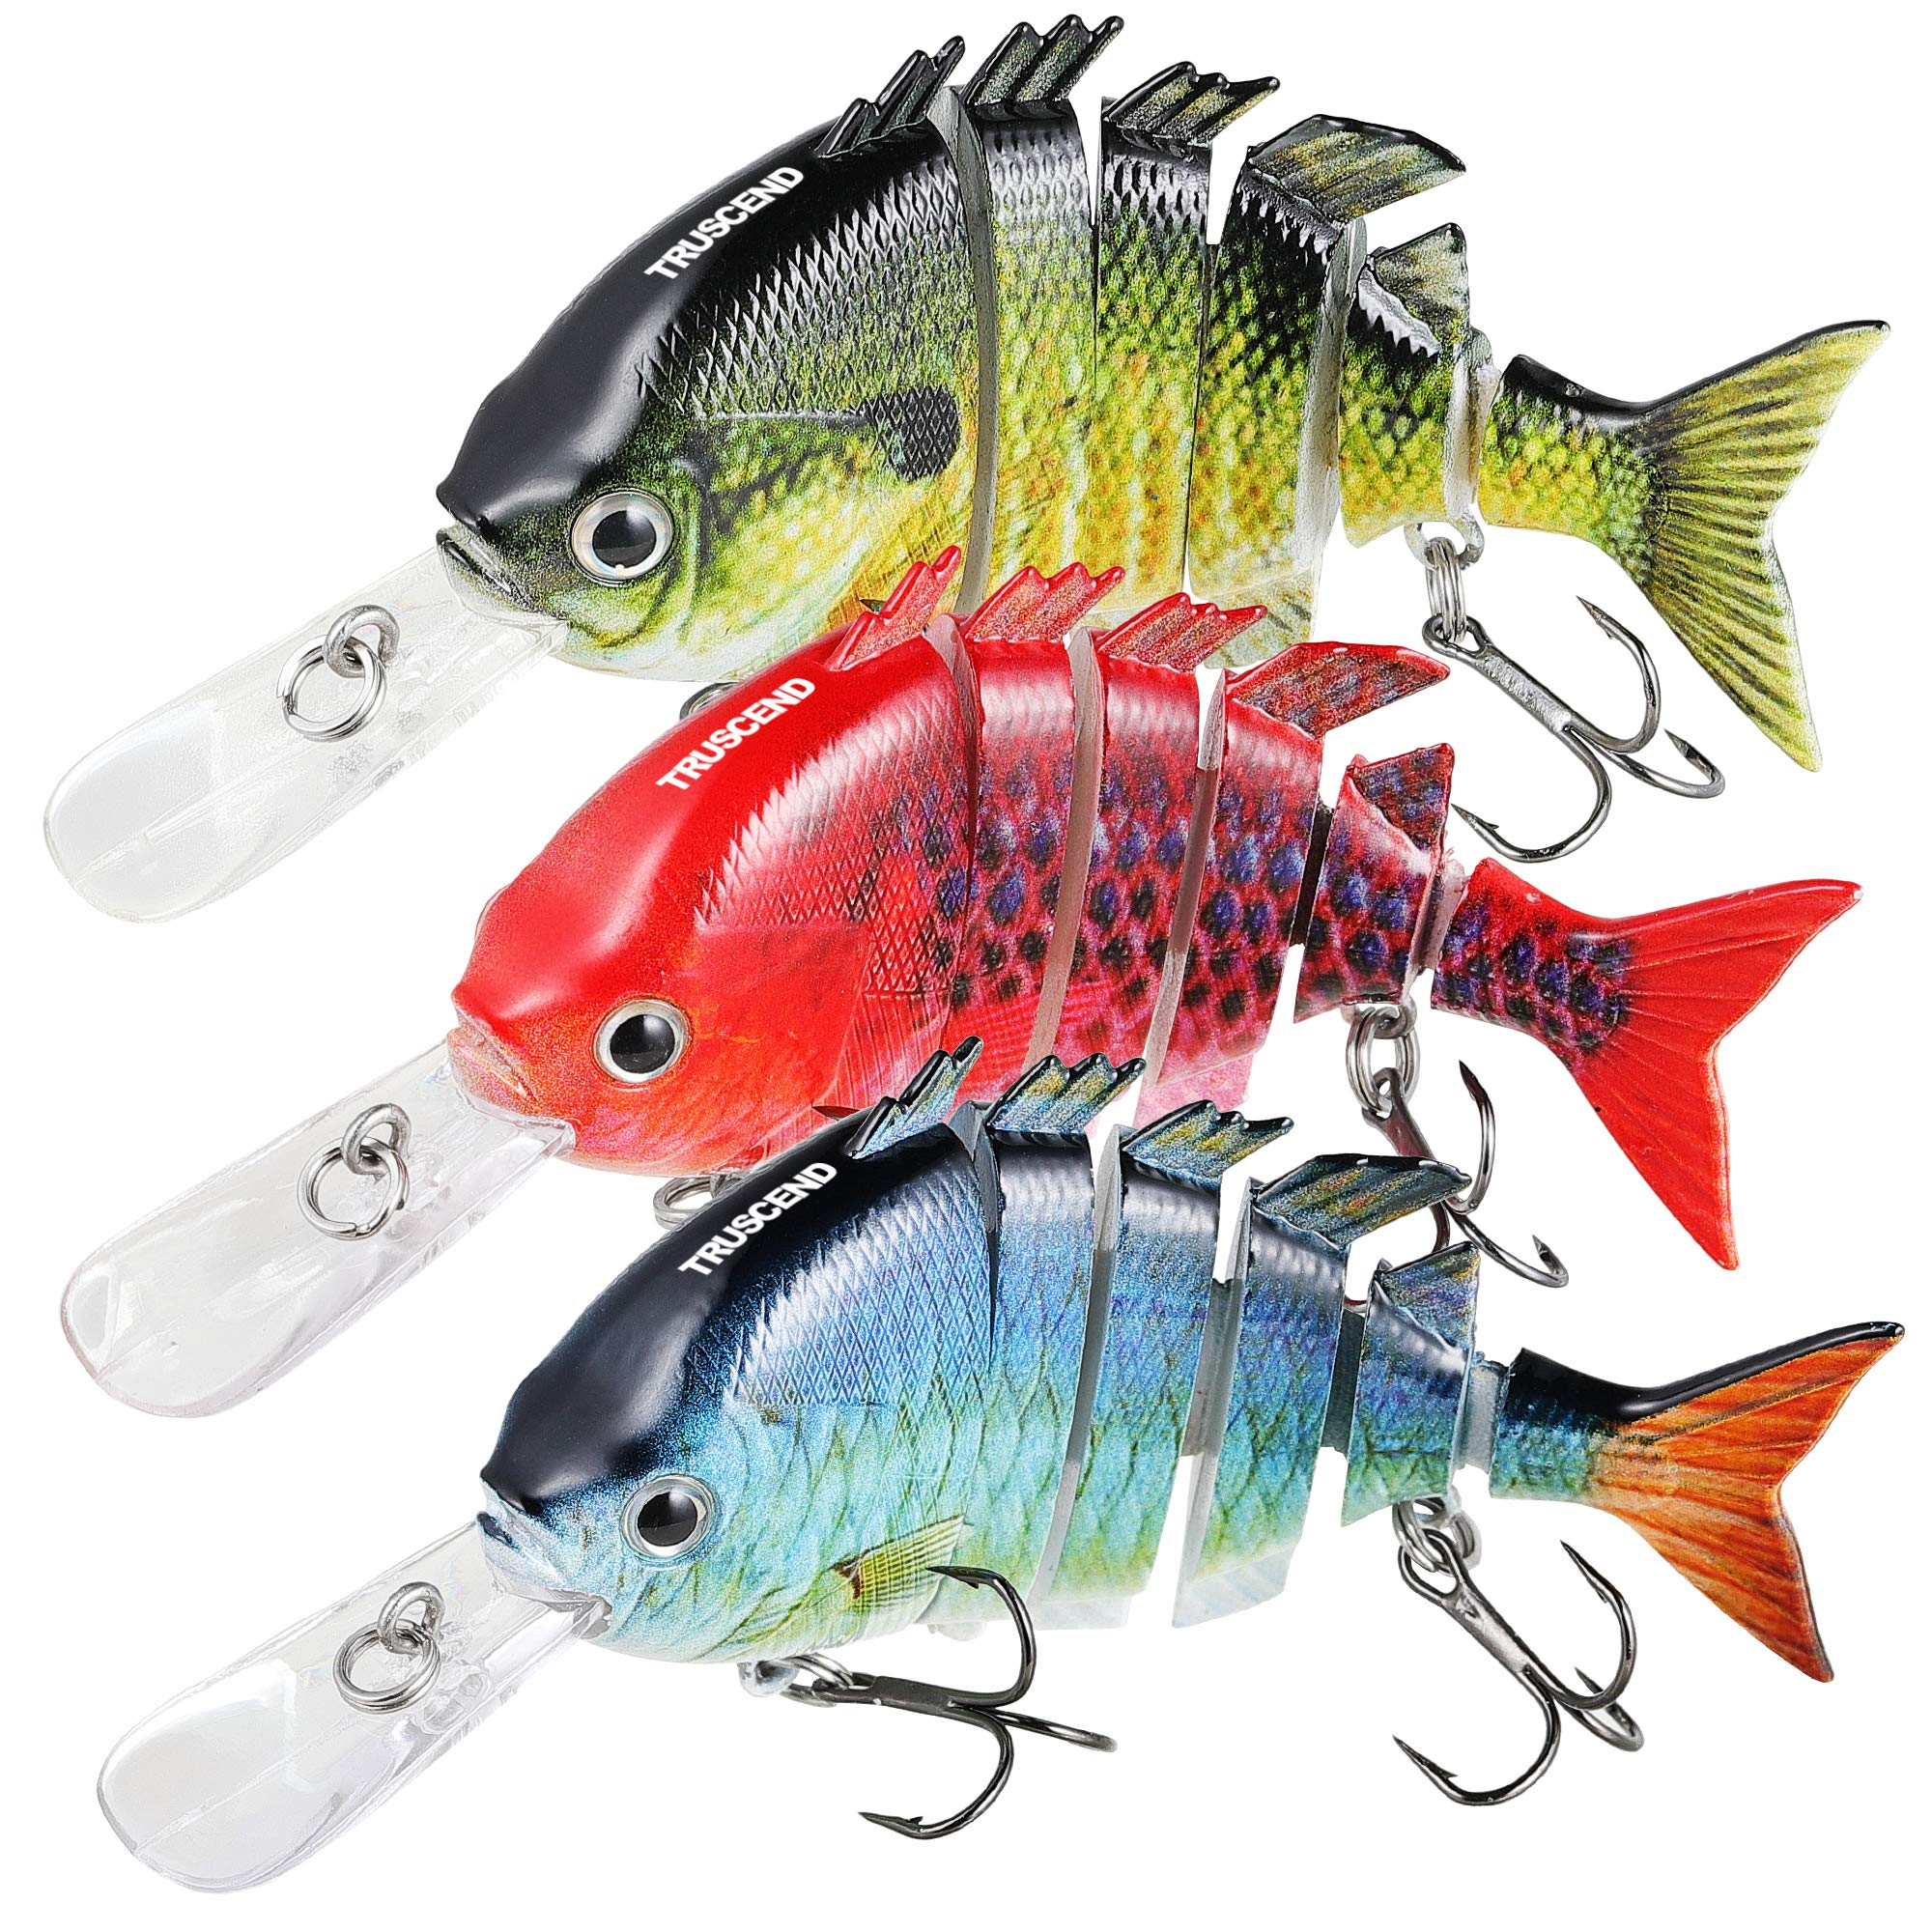 TRUSCEND Fishing Lures for Bass 3.9'' Multi Jointed Swimbaits Slow Sinking Hard Lure Fishing Tackle Kits Lifelike